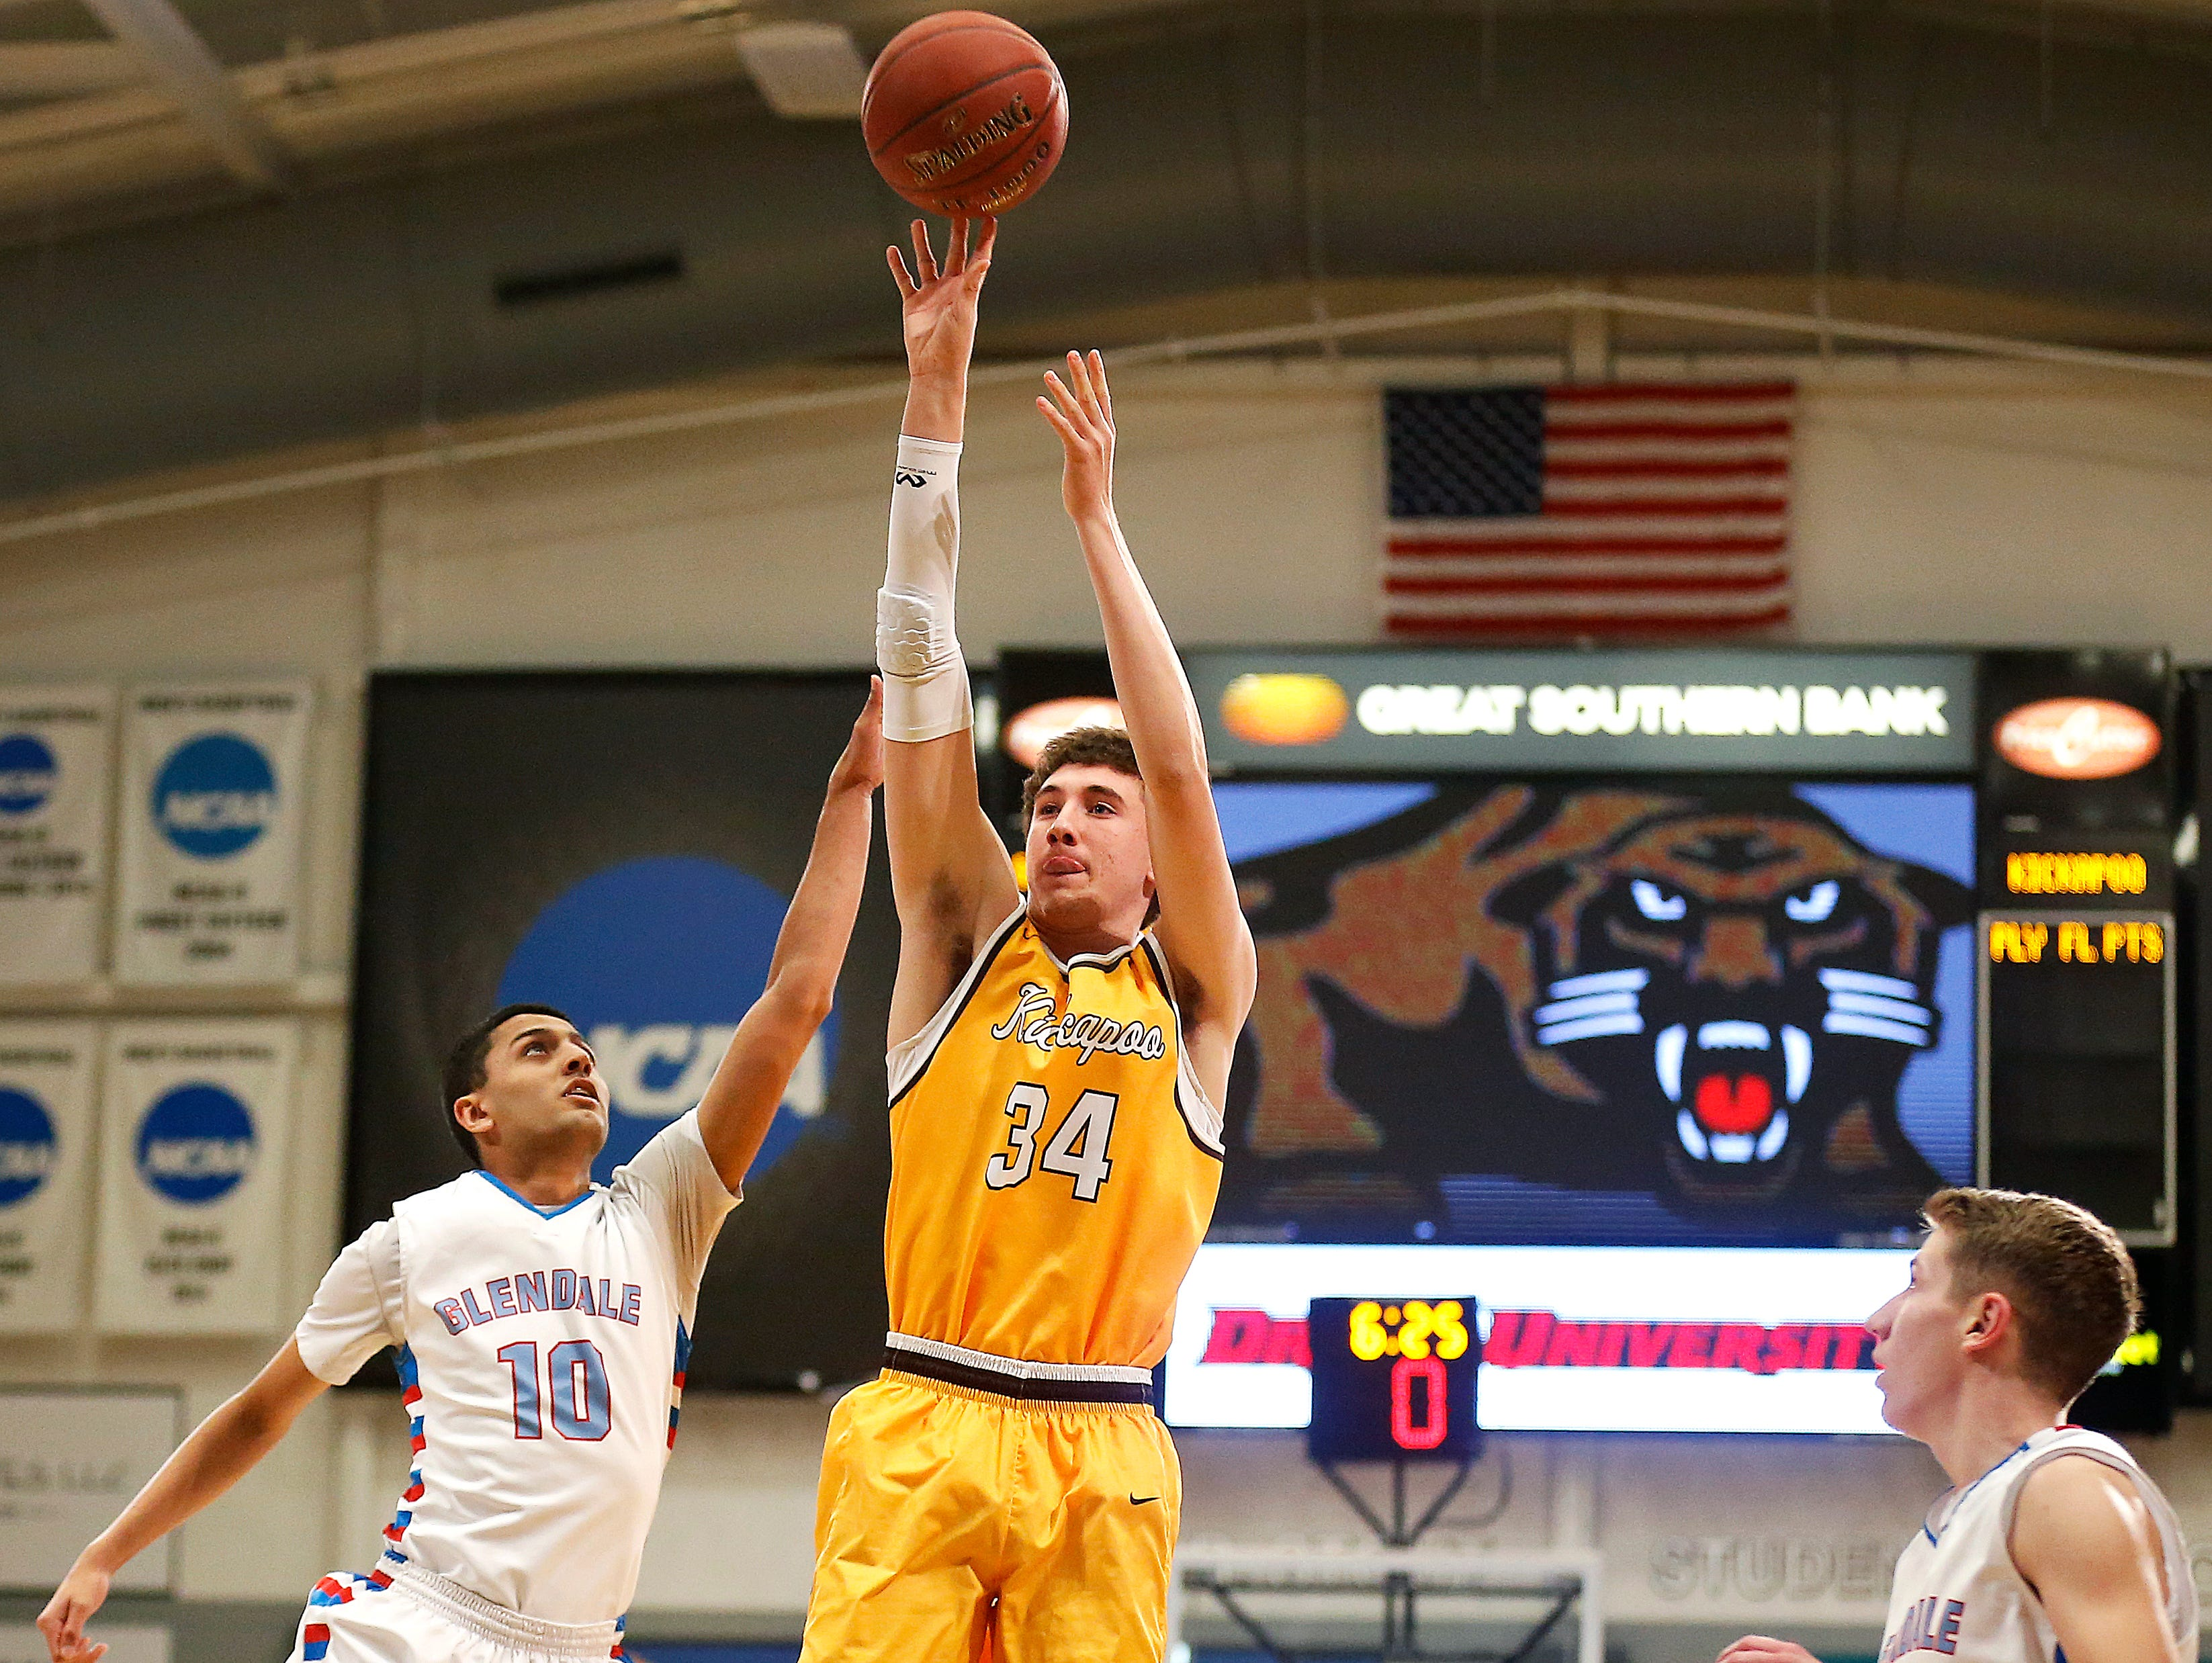 Kickapoo Chiefs senior Jared Ridder (34) shoots the ball from three-point range during first quarter action of the high school basketball game between the Glendale High School Falcons and the Kickapoo High School Chiefs at O'Reilly Family Event Center in Springfield, Mo. on Feb. 7, 2017. The Kickapoo Chiefs won the game 96-77.